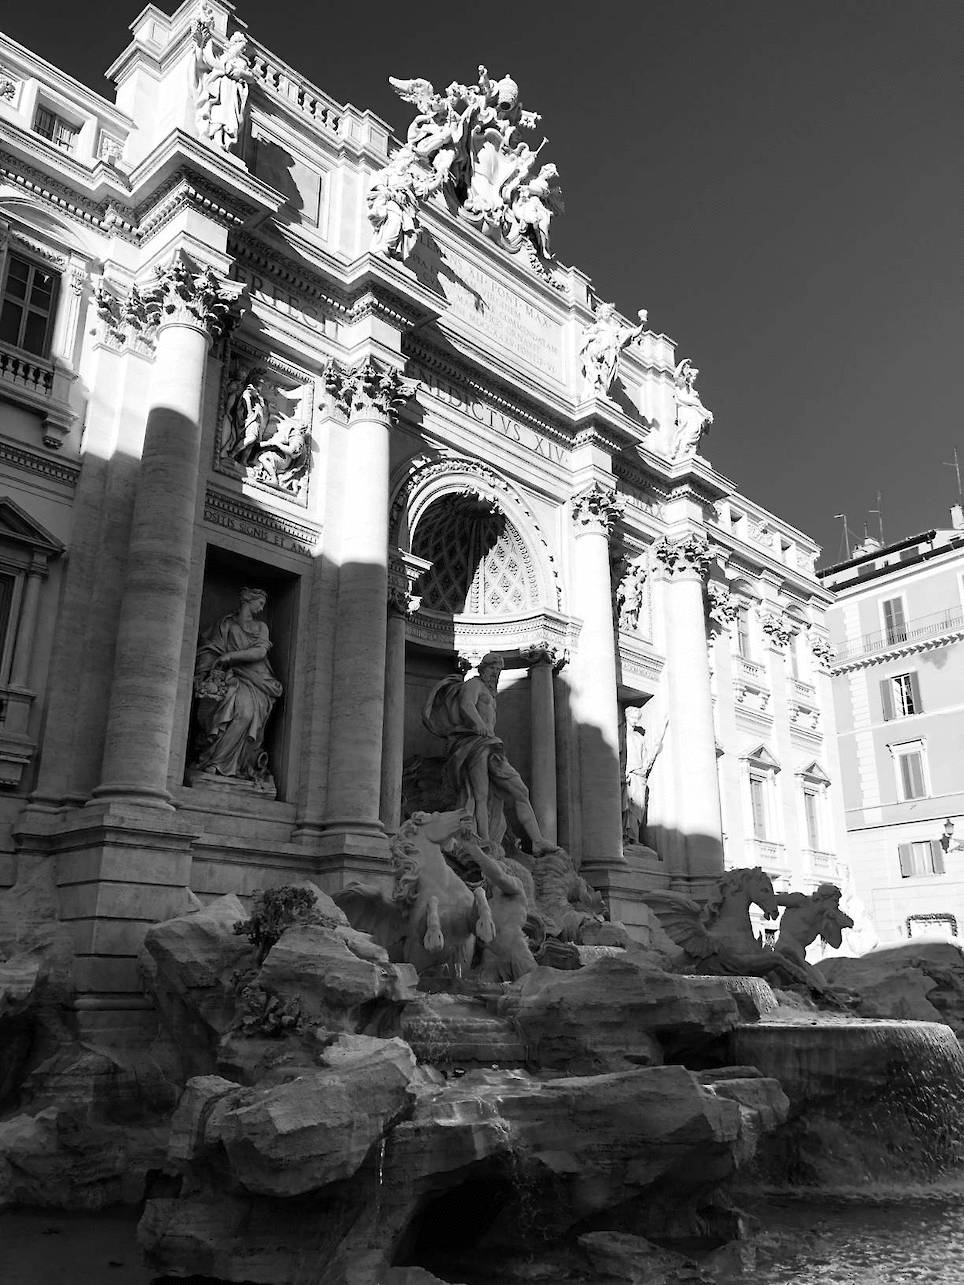 Stunning Shots of Rome in Black and White